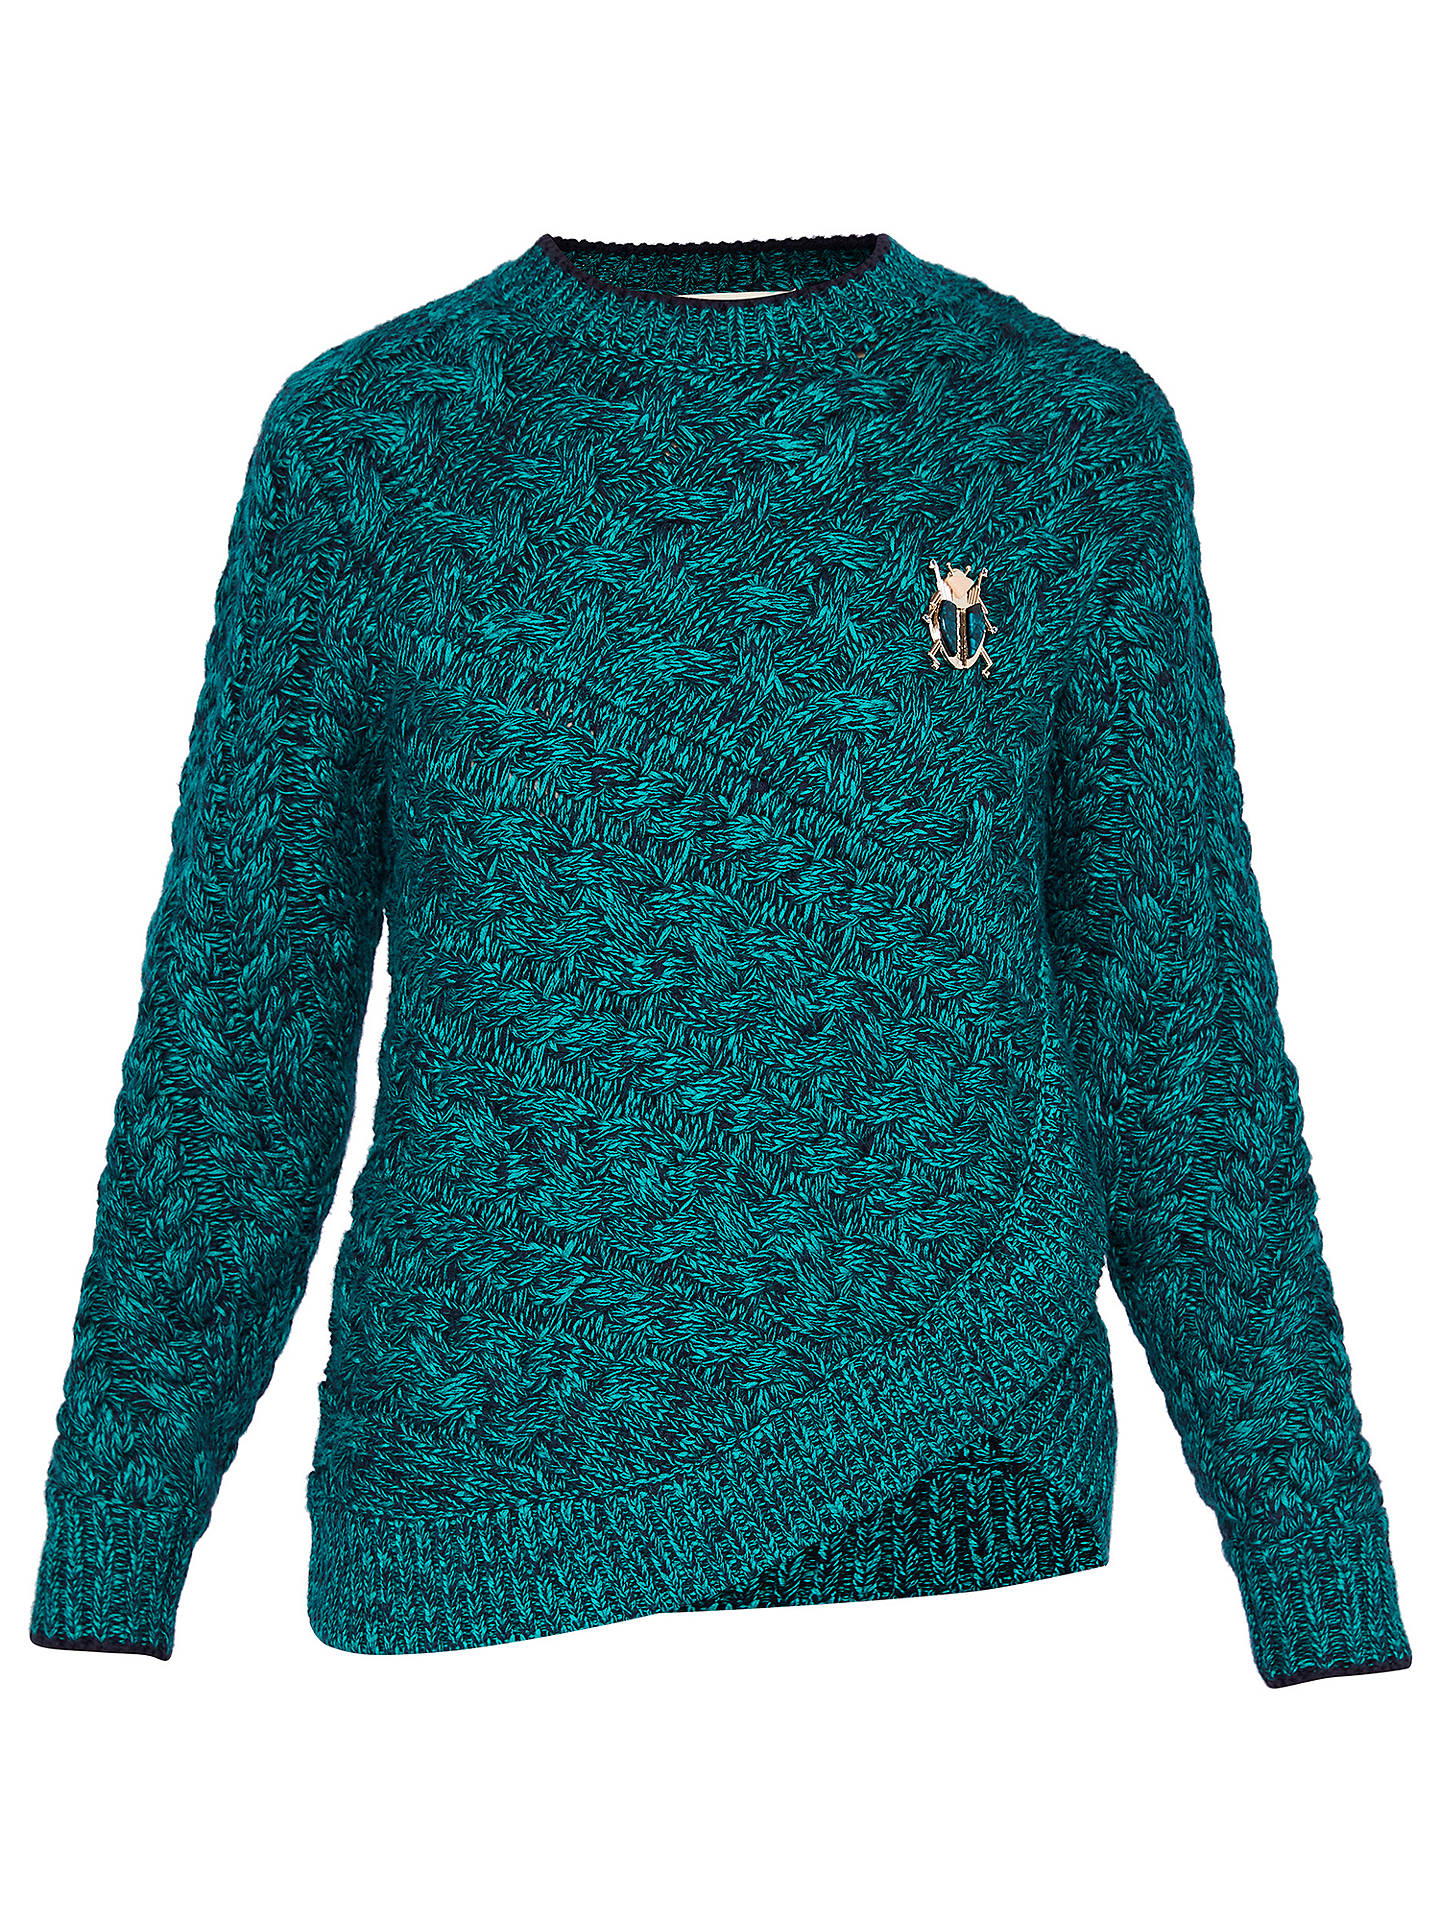 Ted Baker Colour By Numbers Charo Cable Knit Jumper at John Lewis ...